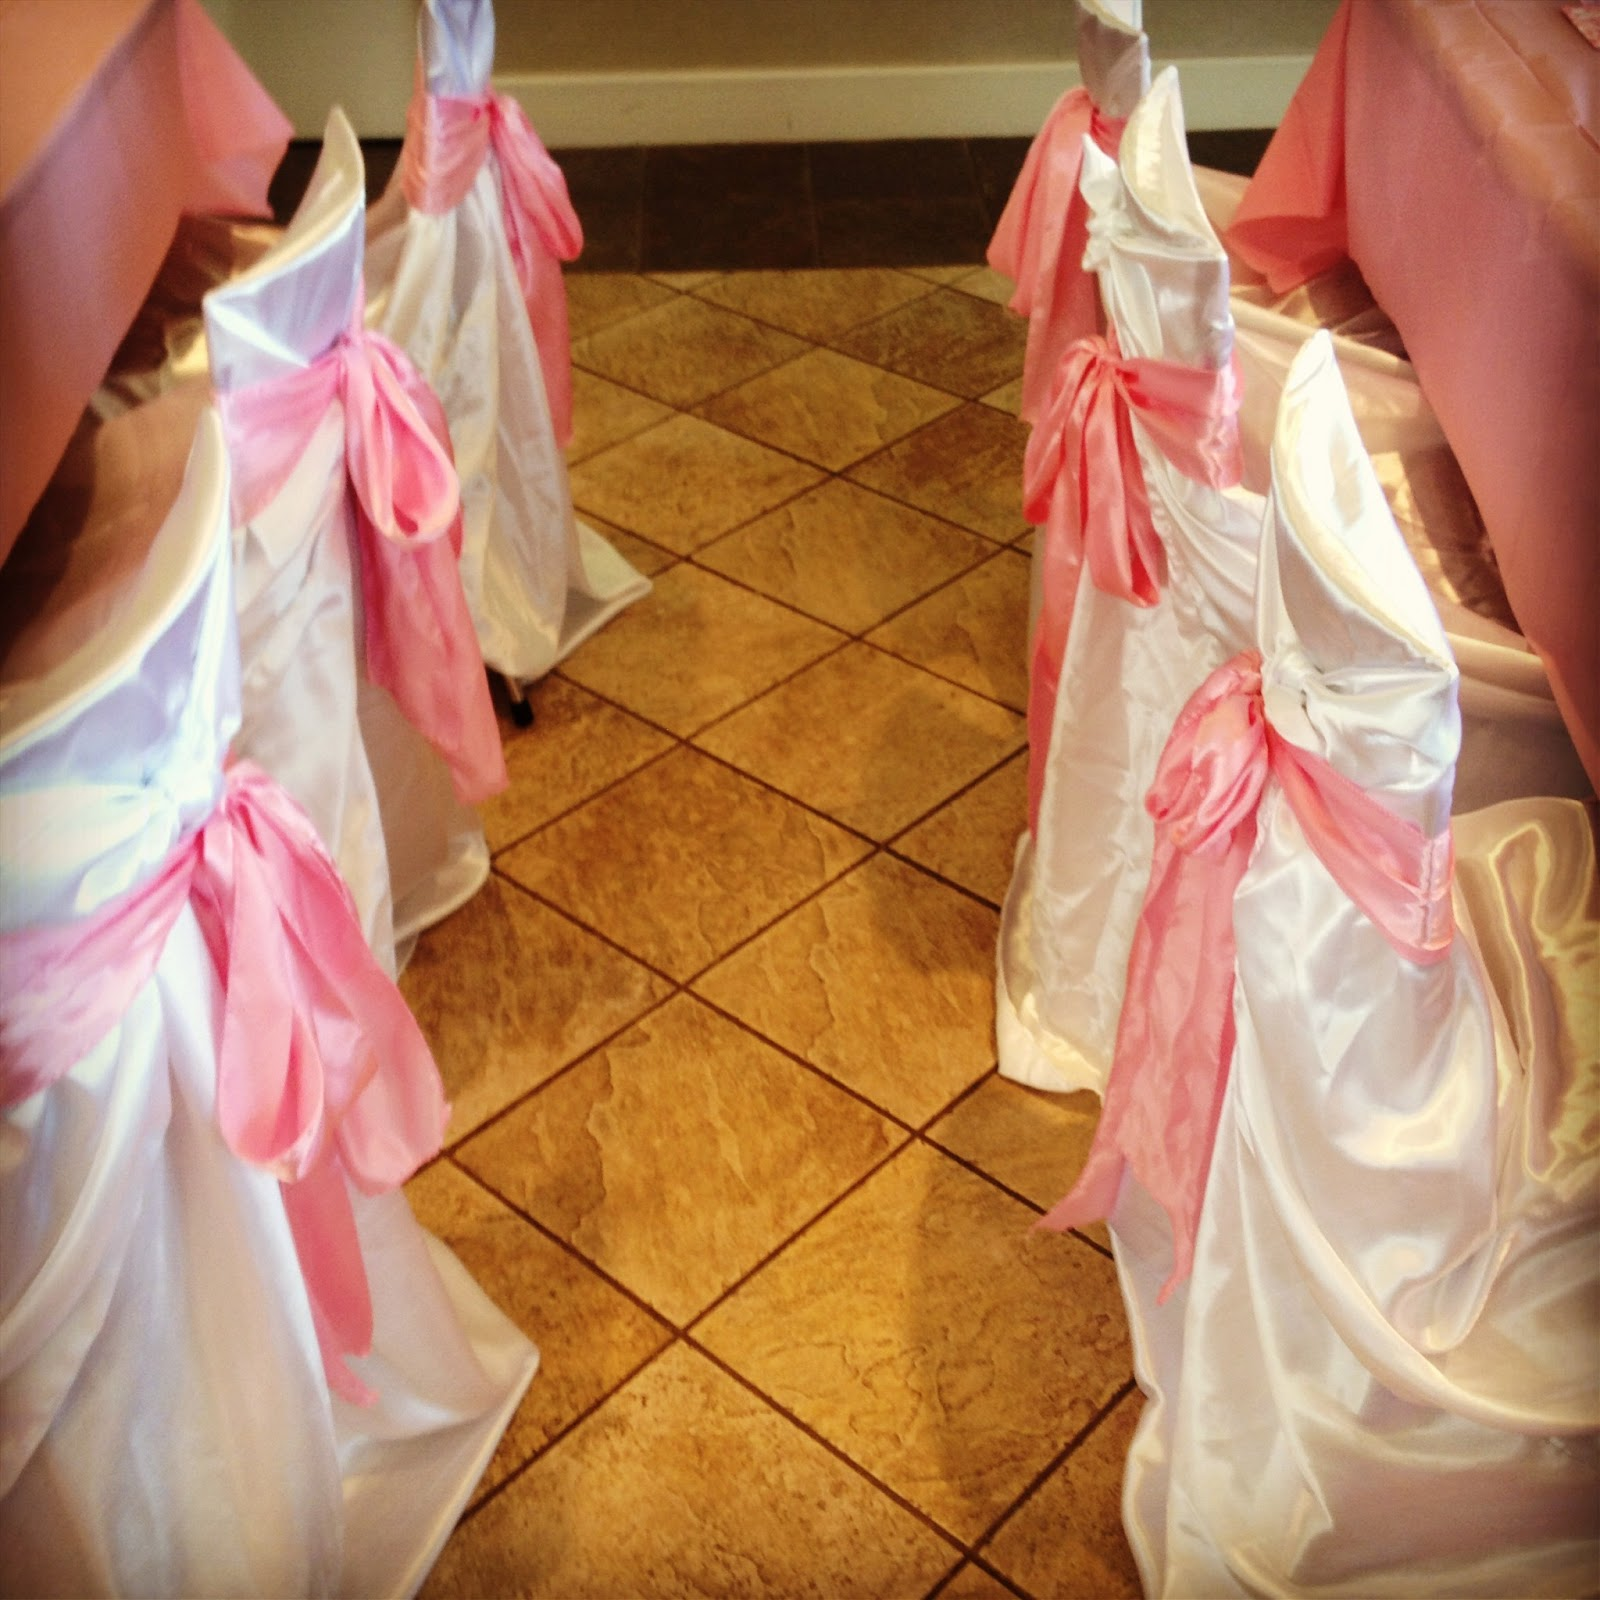 plastic chair covers party city wheelchair nz exquisite couture designs all things creative by crystal